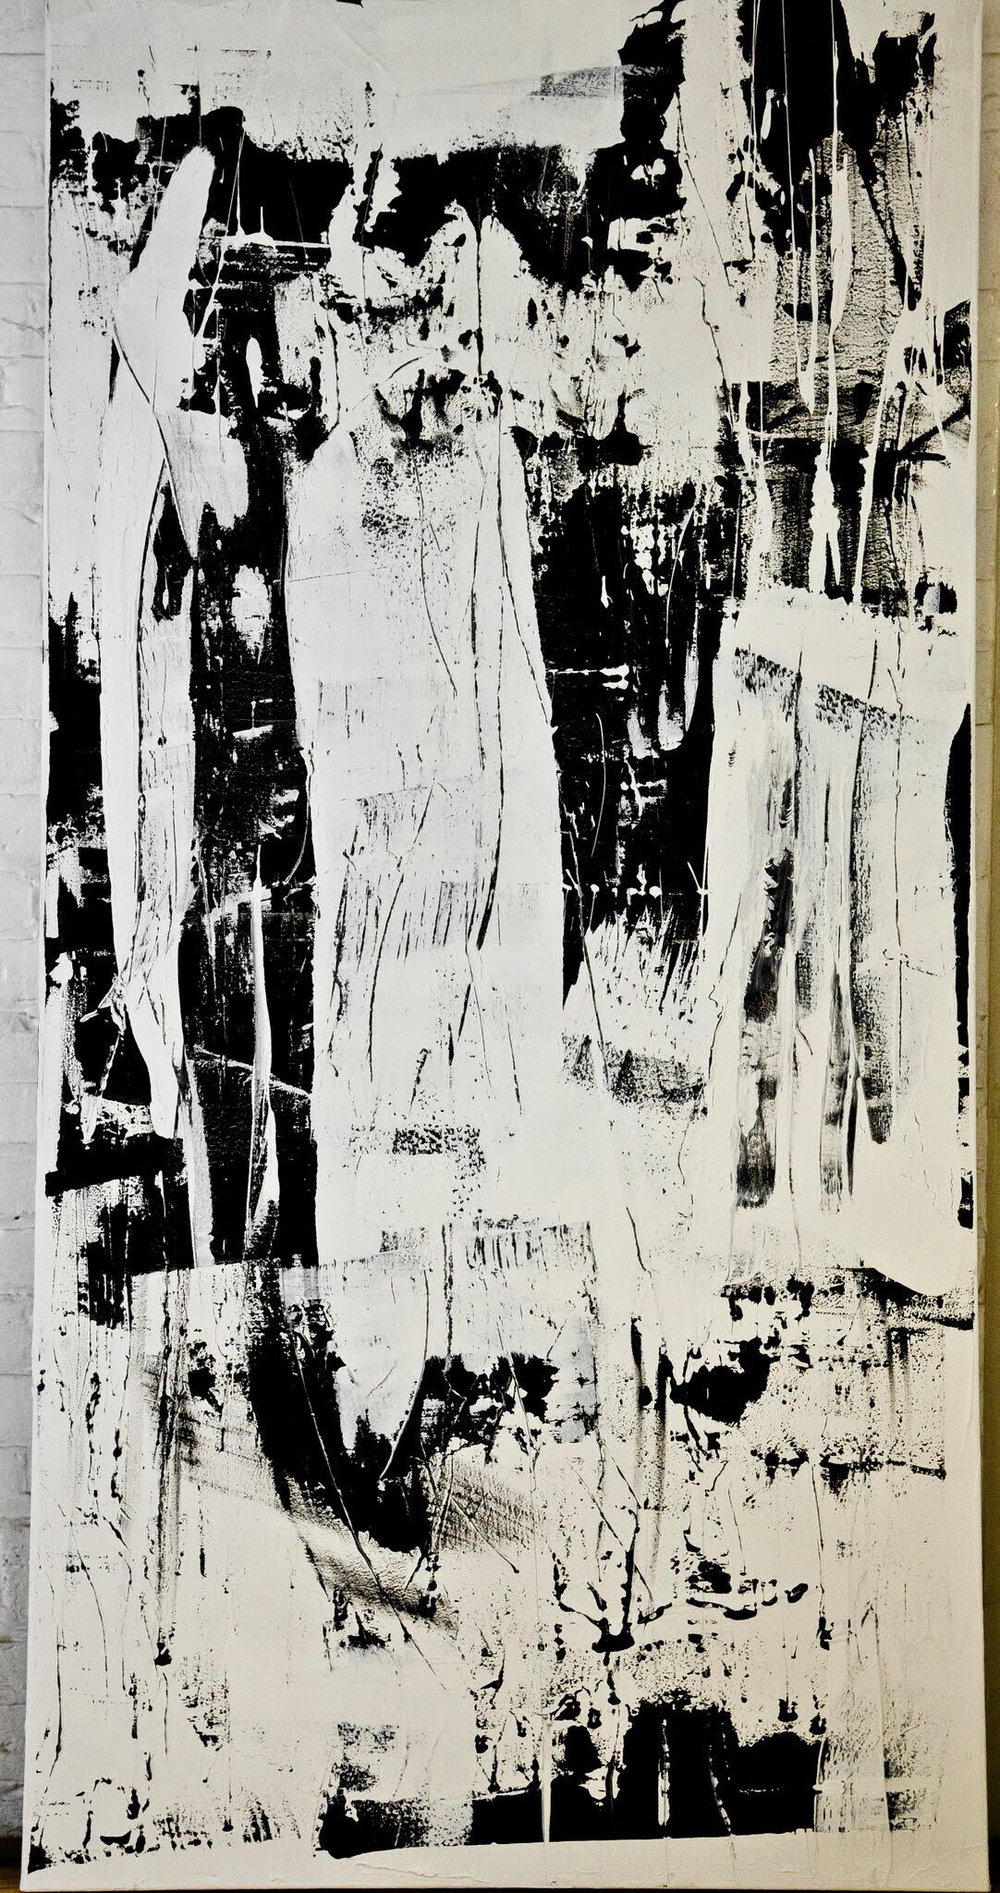 black and white series no. 2 / acrylic on canvas / 60 in. x 24 in.